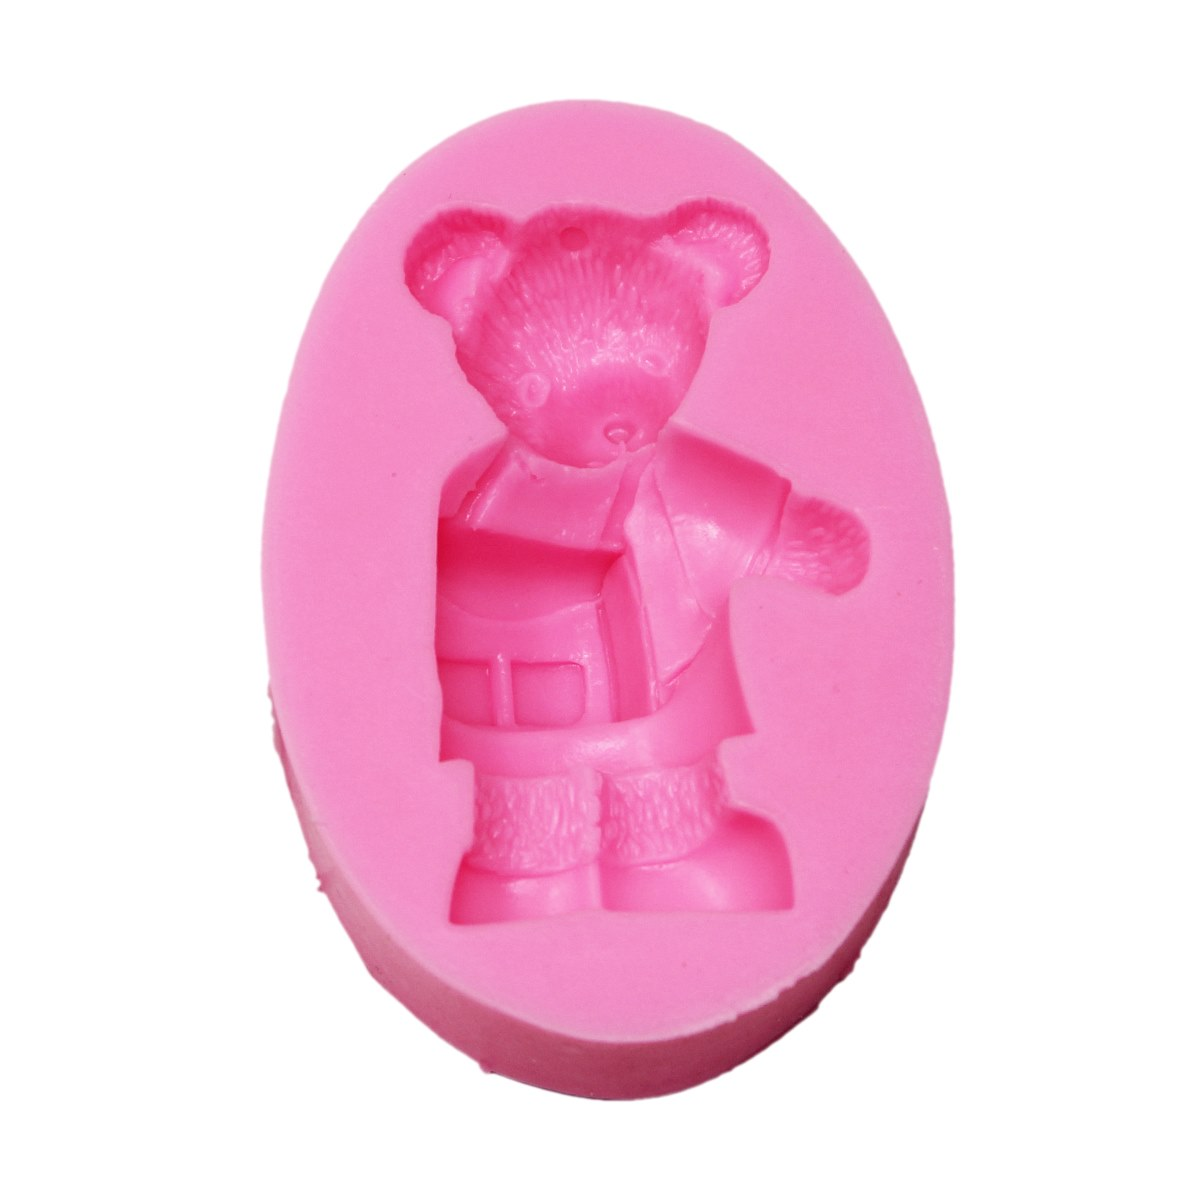 Resin Silicone Mould Teddy Design